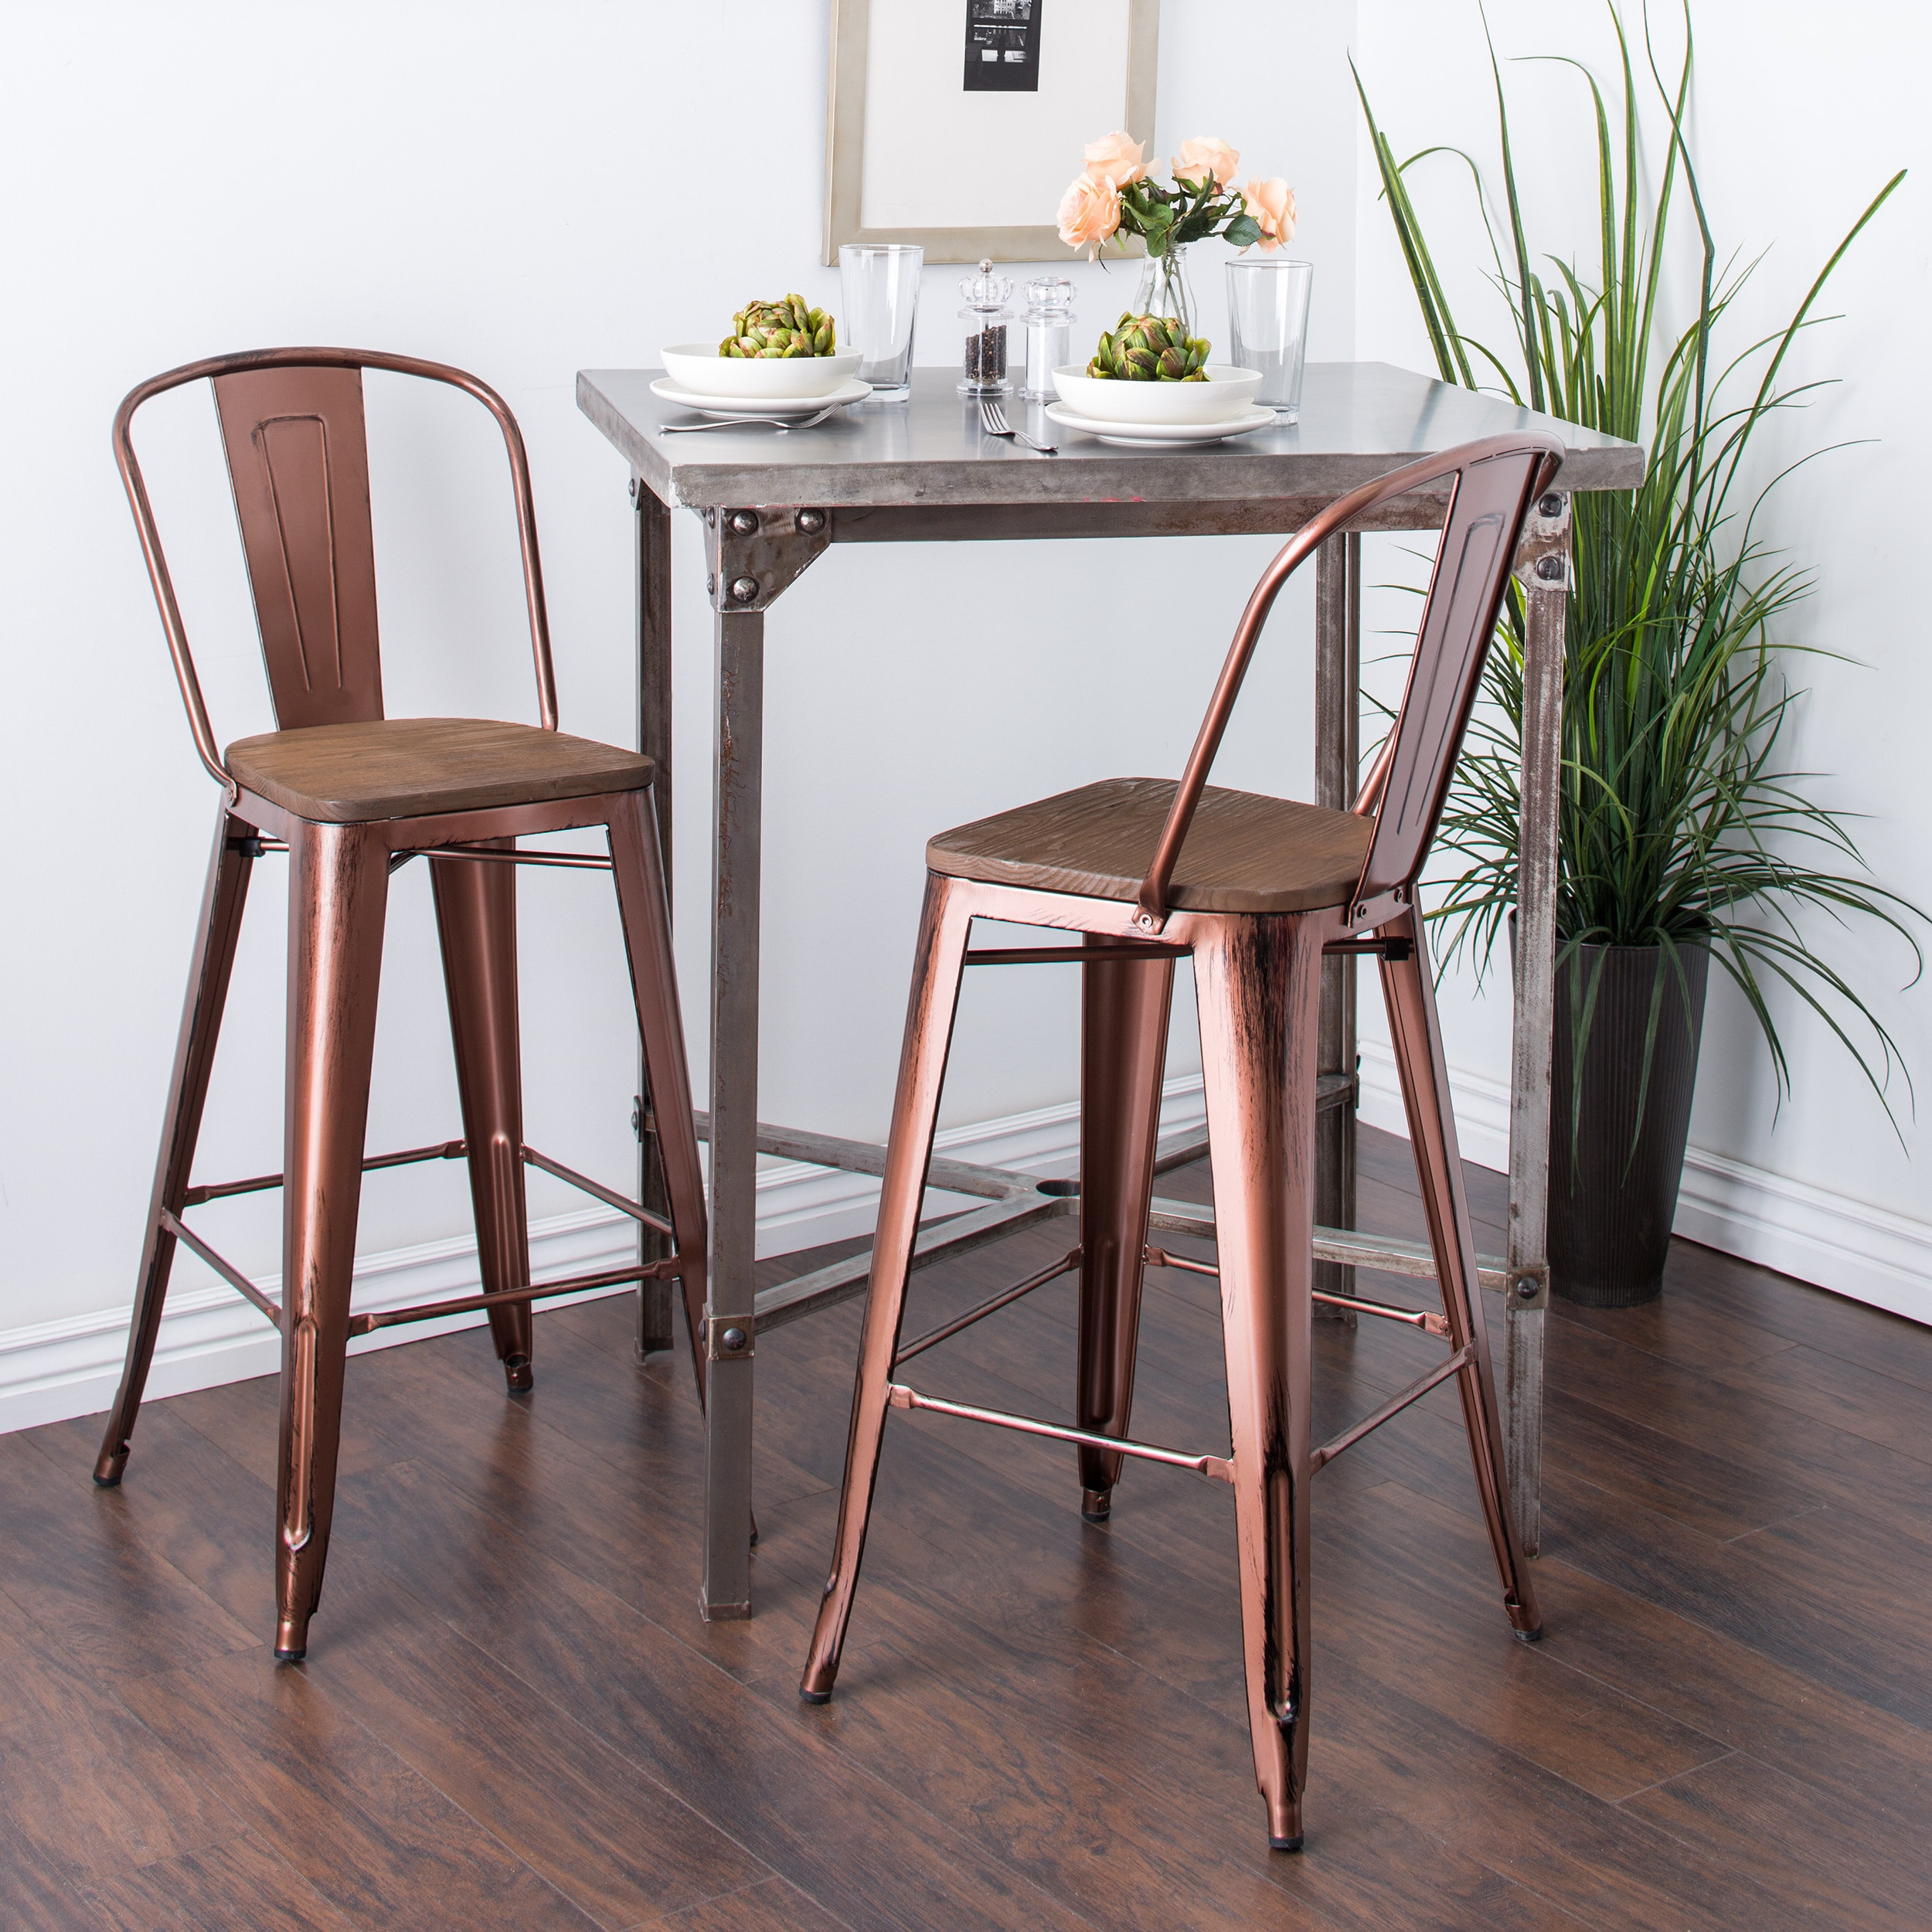 Carbon Loft Tabouret 30 Inch Wood Seat Brushed Copper Bistro Bar Stool (Set  Of 2)   Free Shipping Today   Overstock.com   16706416